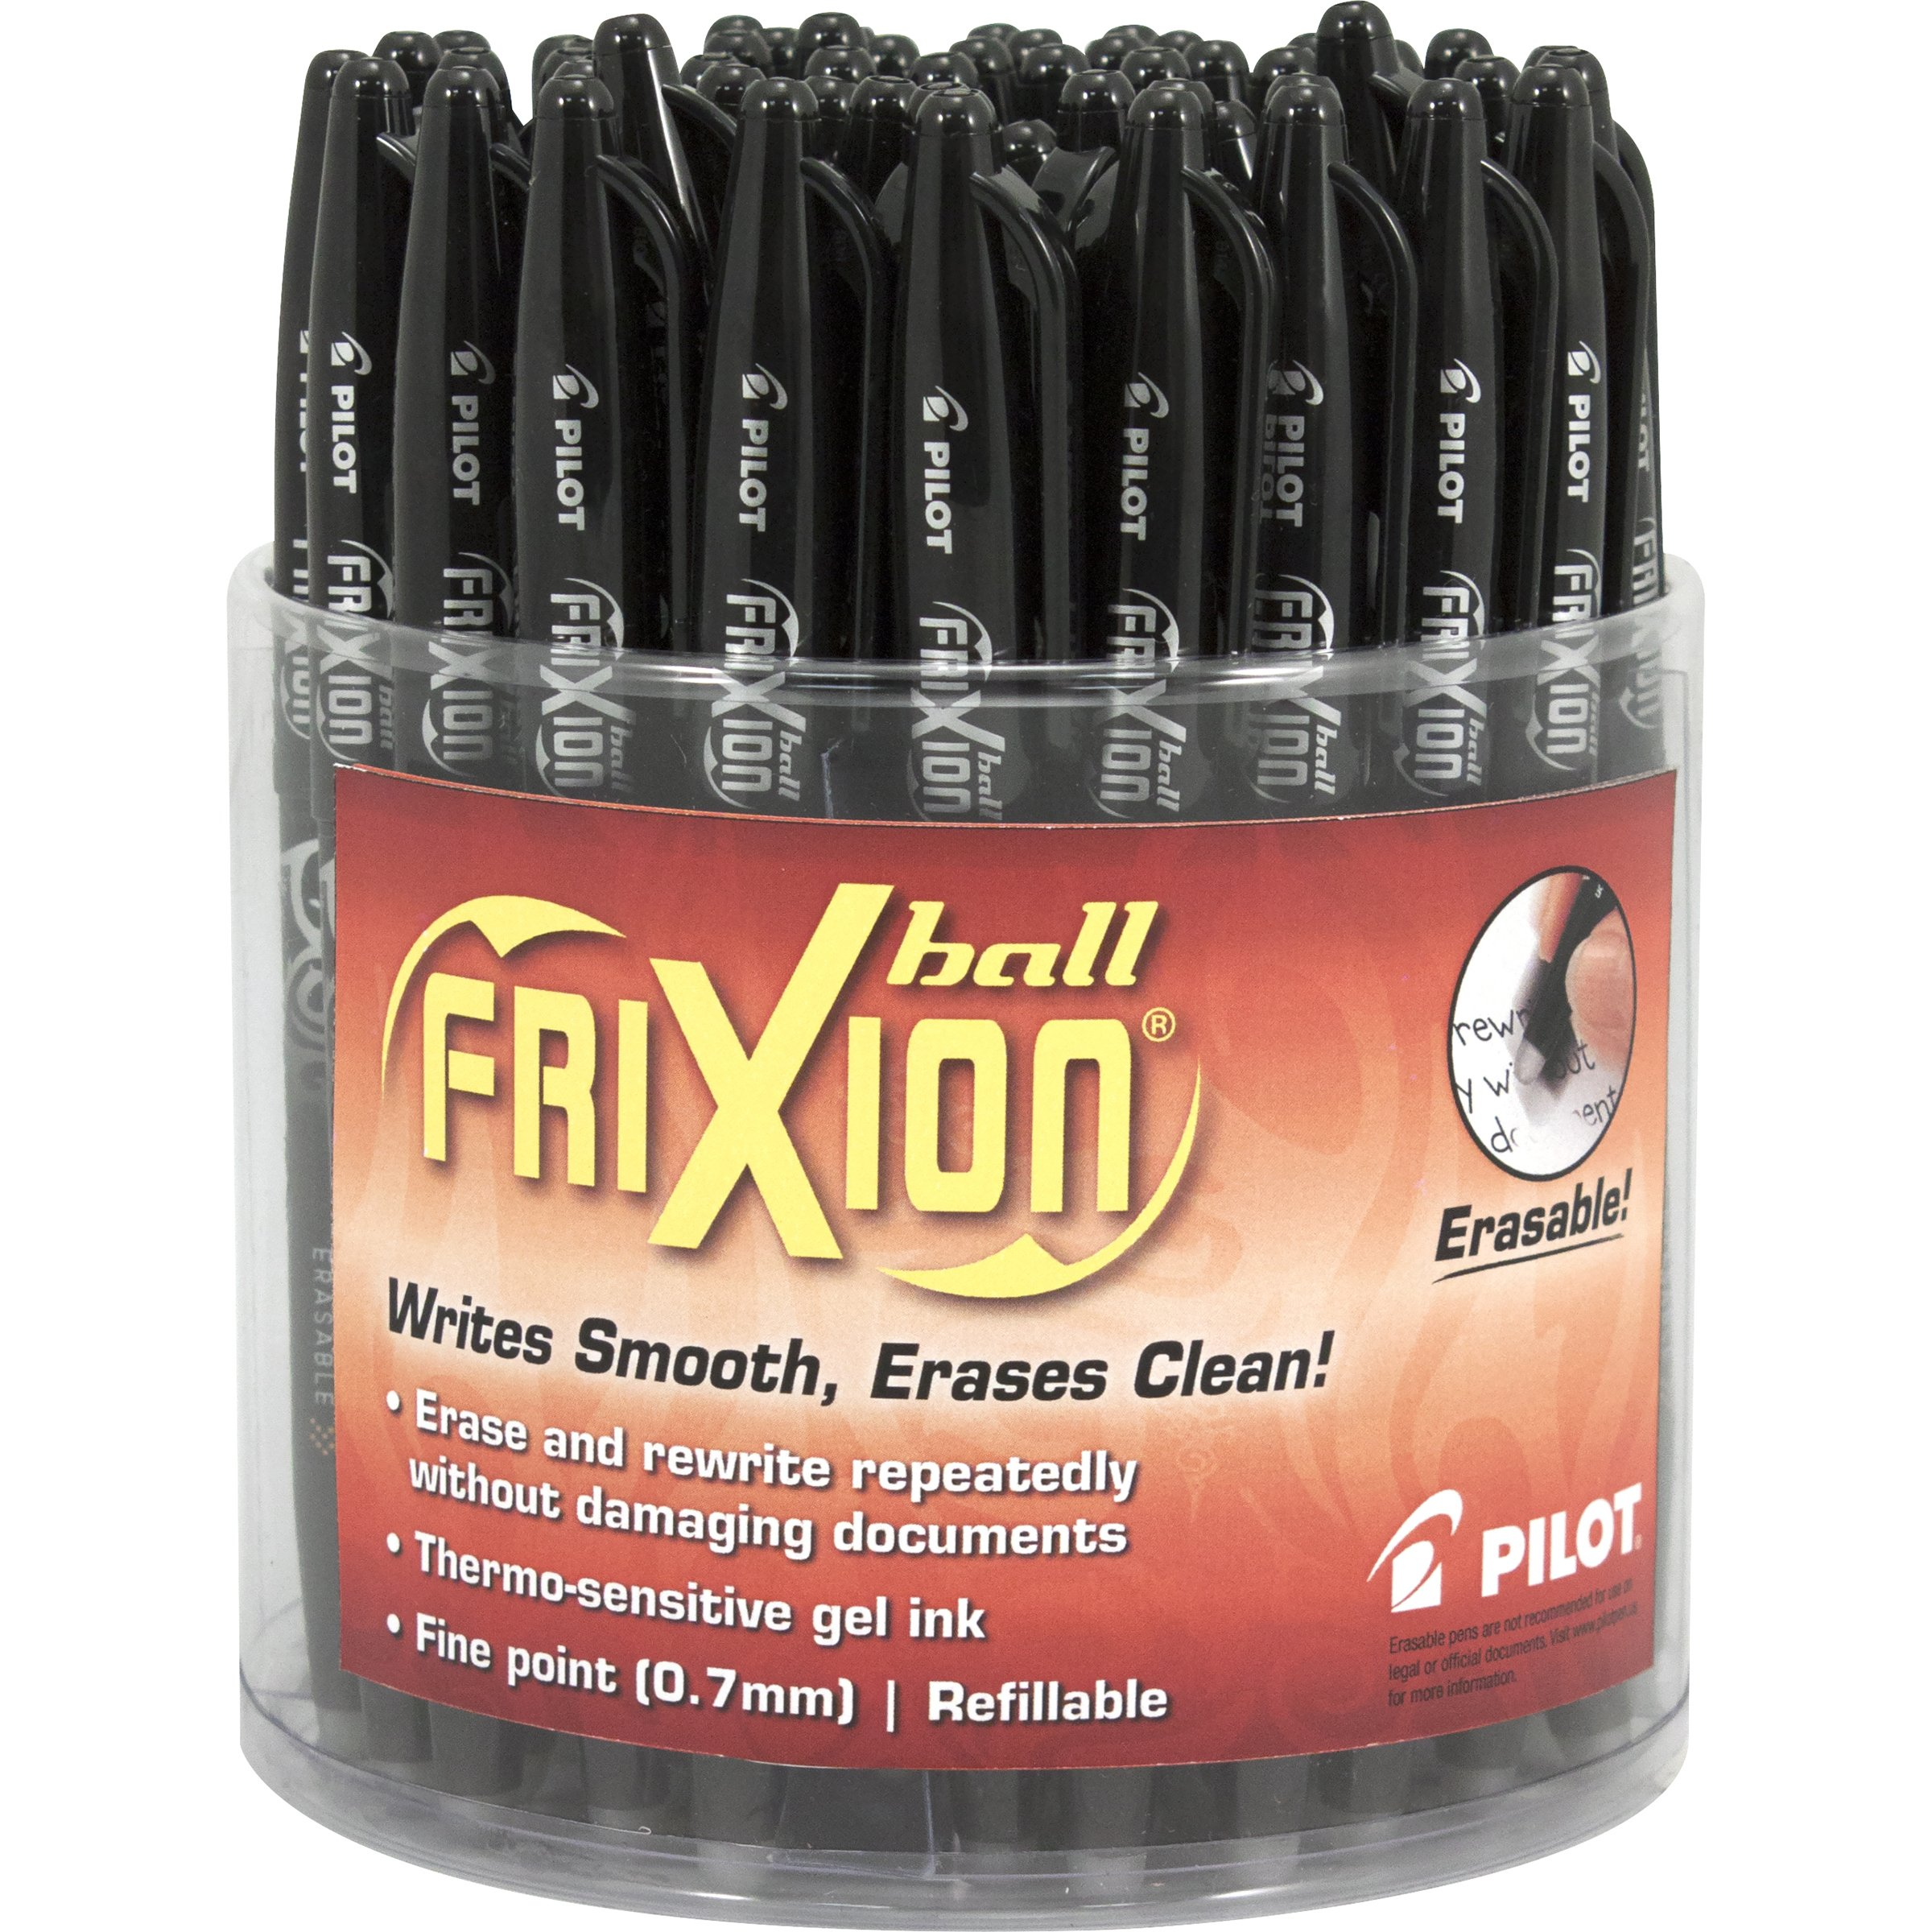 Pilot FriXion Erasable Ball Pen Gel Ink Black Ink Fine Point (.7) Tub of 48 Pens; Make Mistakes Disappear, No Need For White Out. Smooth Lines to the End of Page, America's #1 Selling Pen Brand